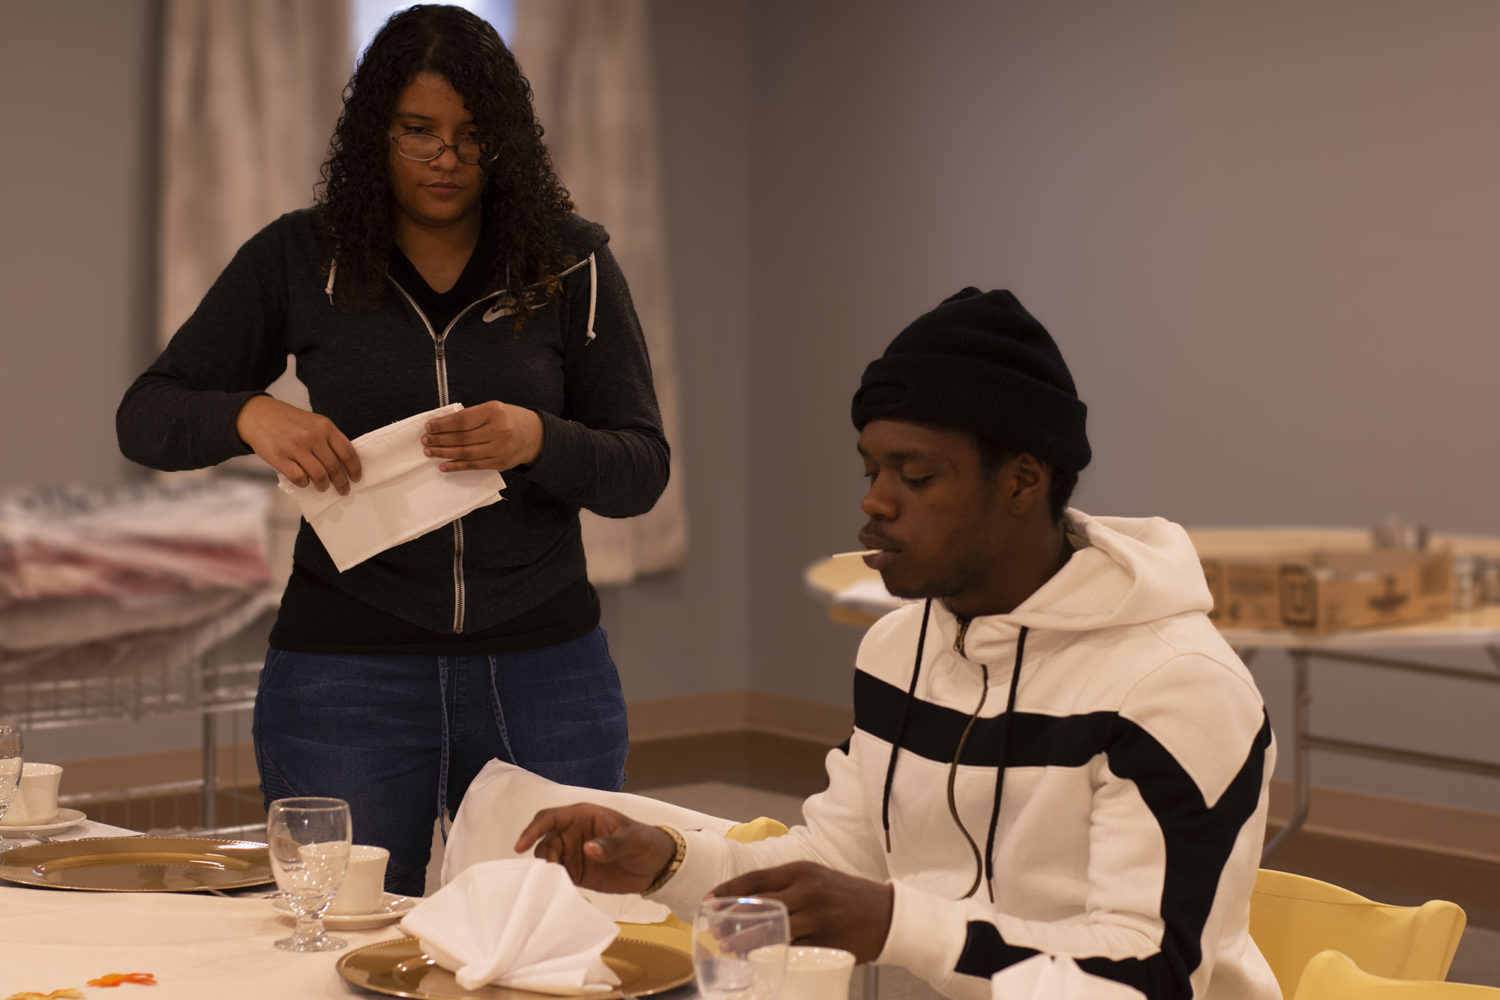 A female and male student practice folding napkins for a banquet display.